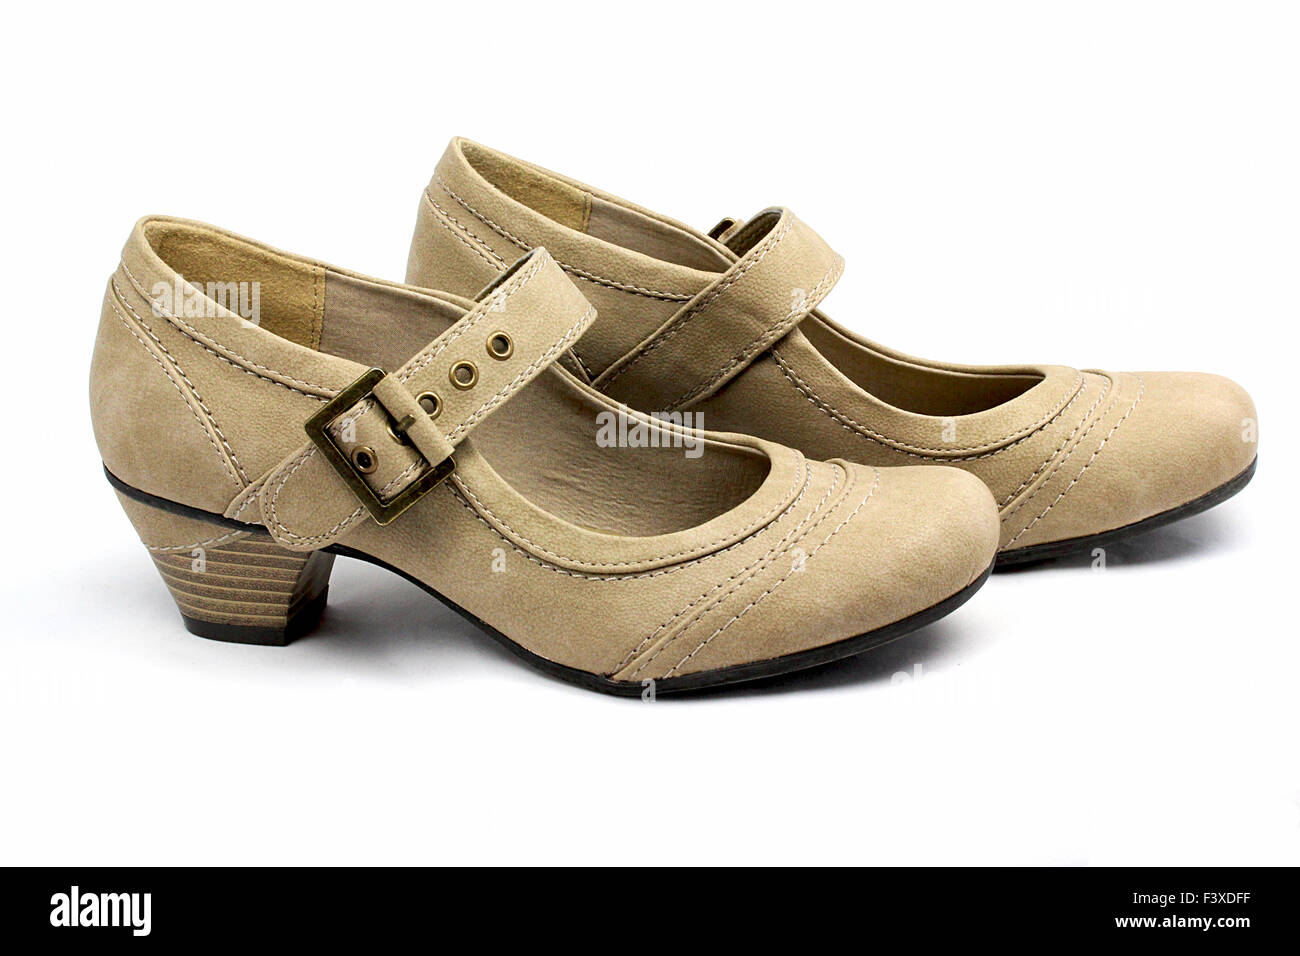 shoes for woman - Stock Image